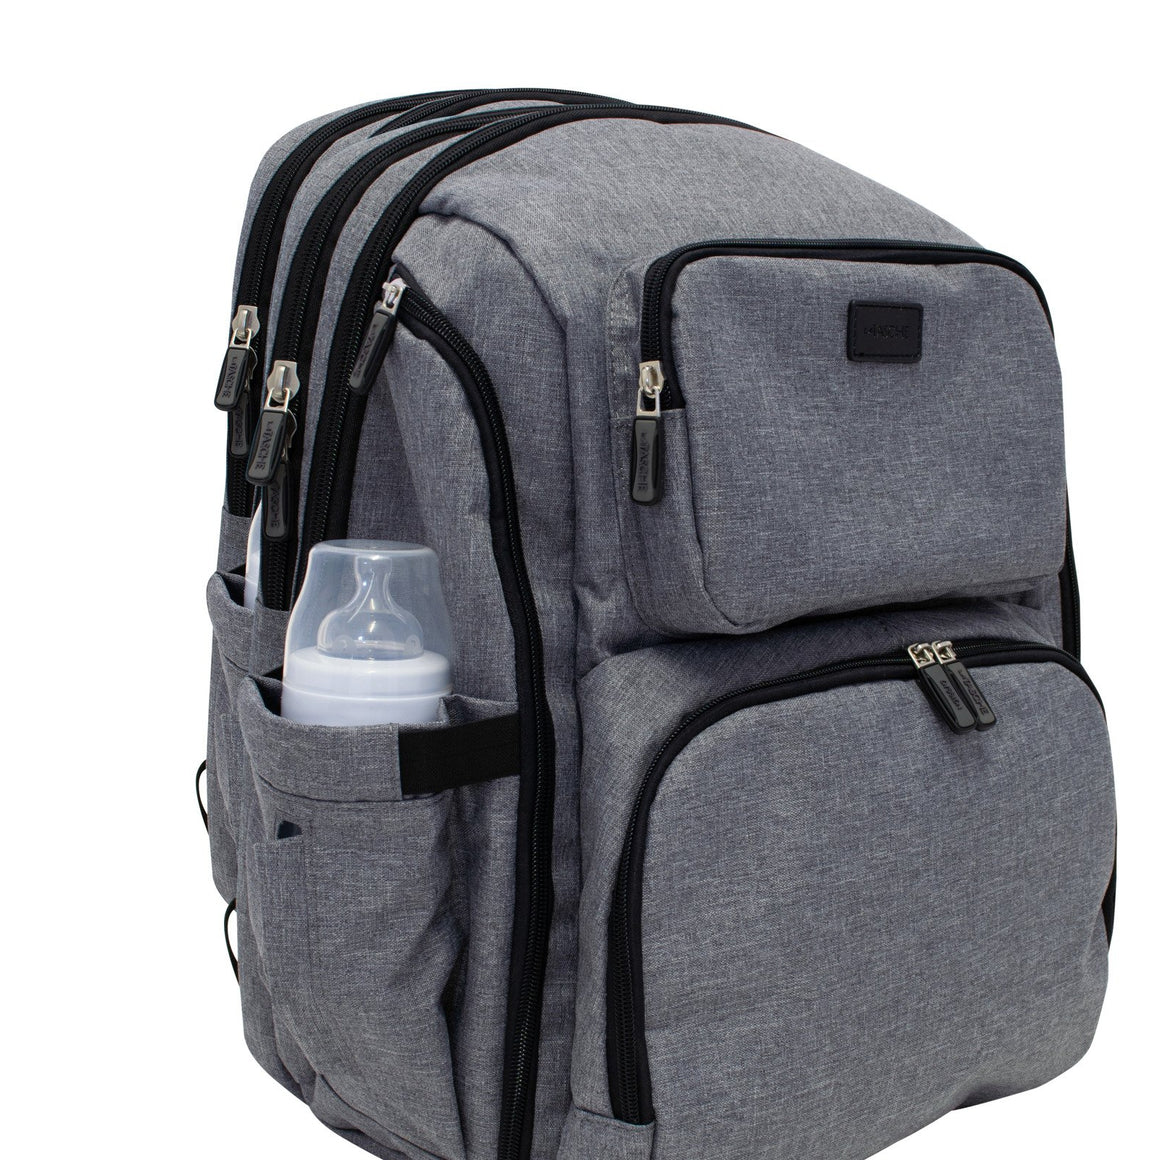 La Tasche Iconic Backpack, Grey with Black trim | La Tasche | Baby Little Planet Store Hoppers Crossing